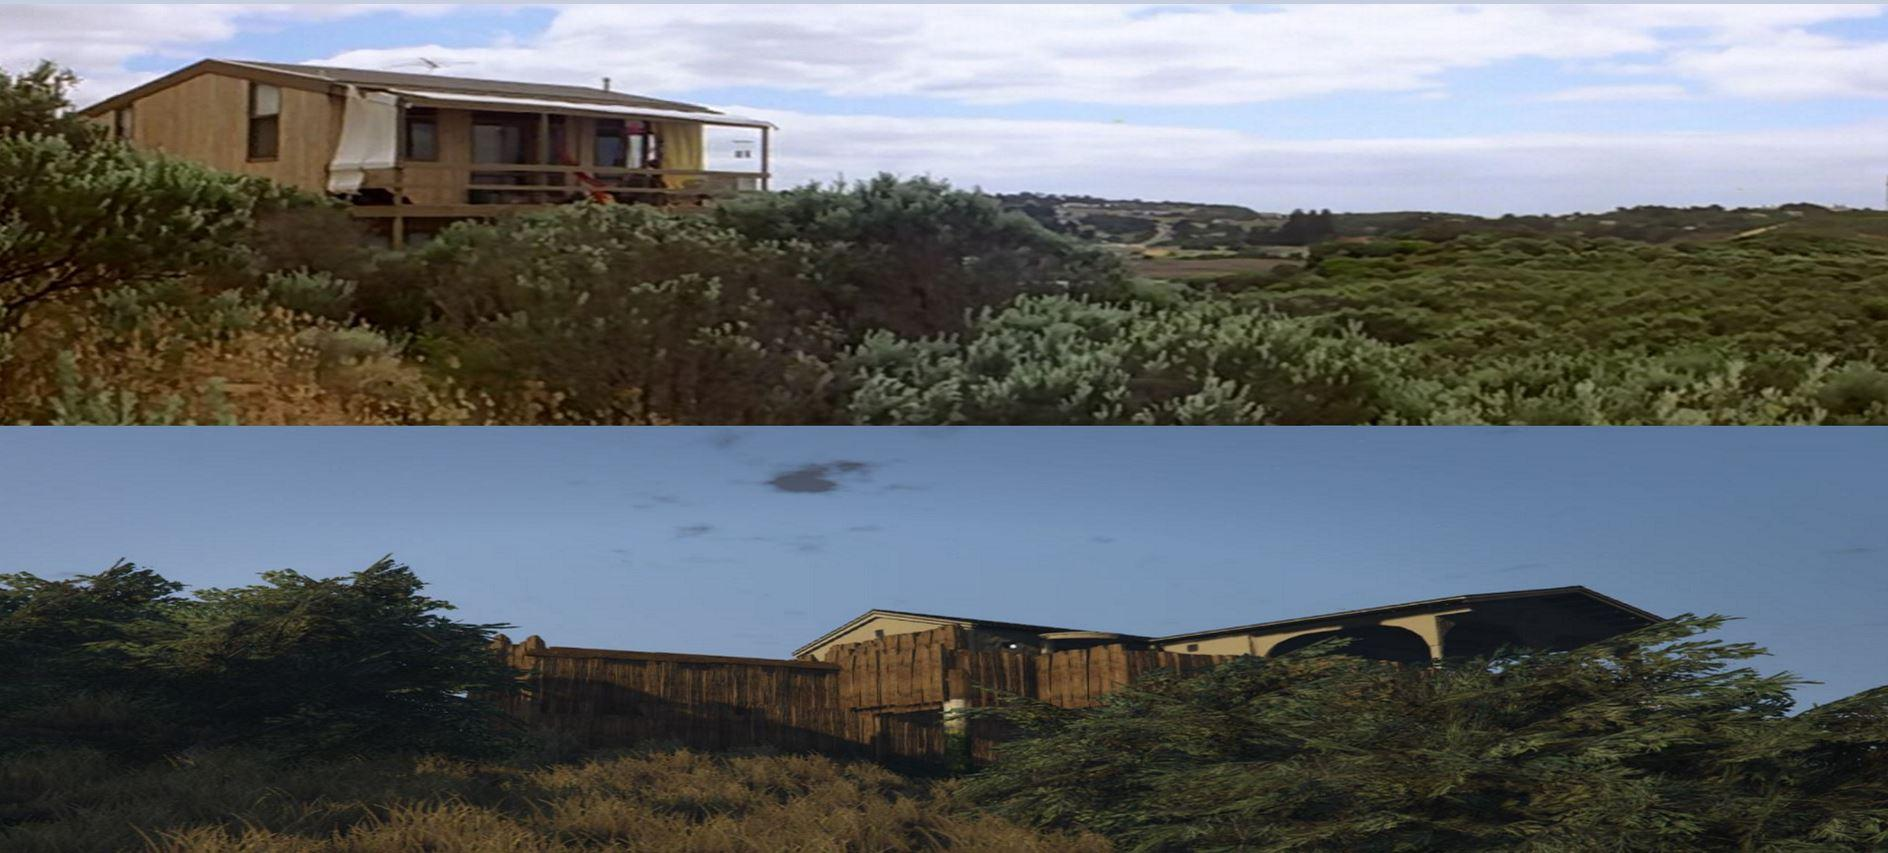 Mad max max 39 s beach house gta5 for Housse storio max 5